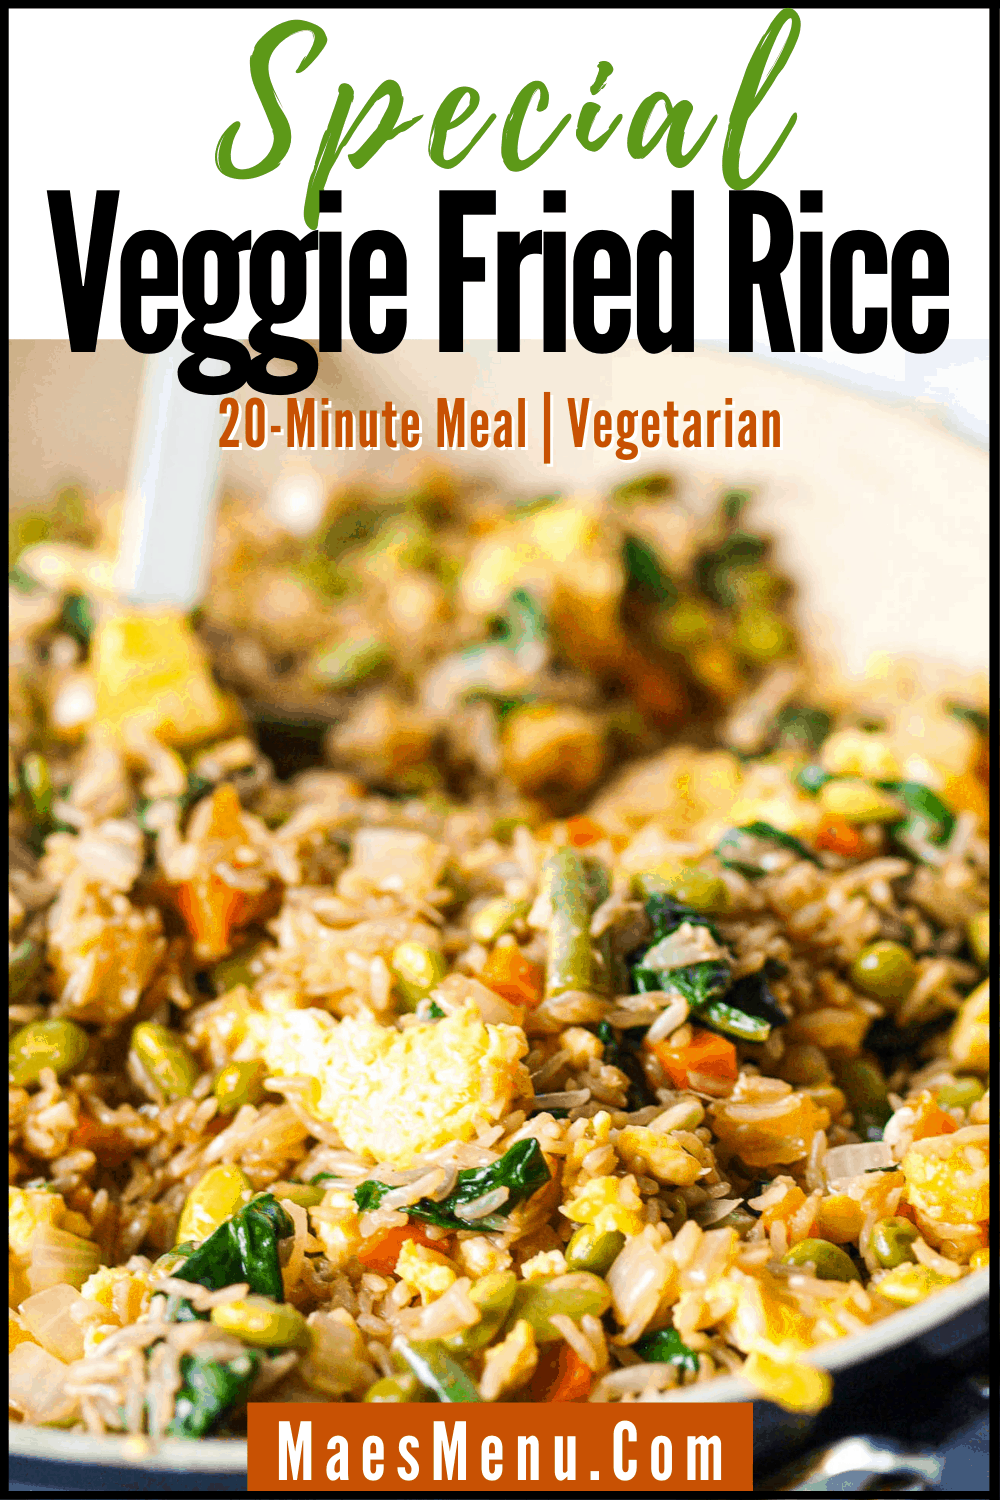 A pinterest pin for Special veggie fried rice. On the image is an up-close of the fried rice in a saute pan